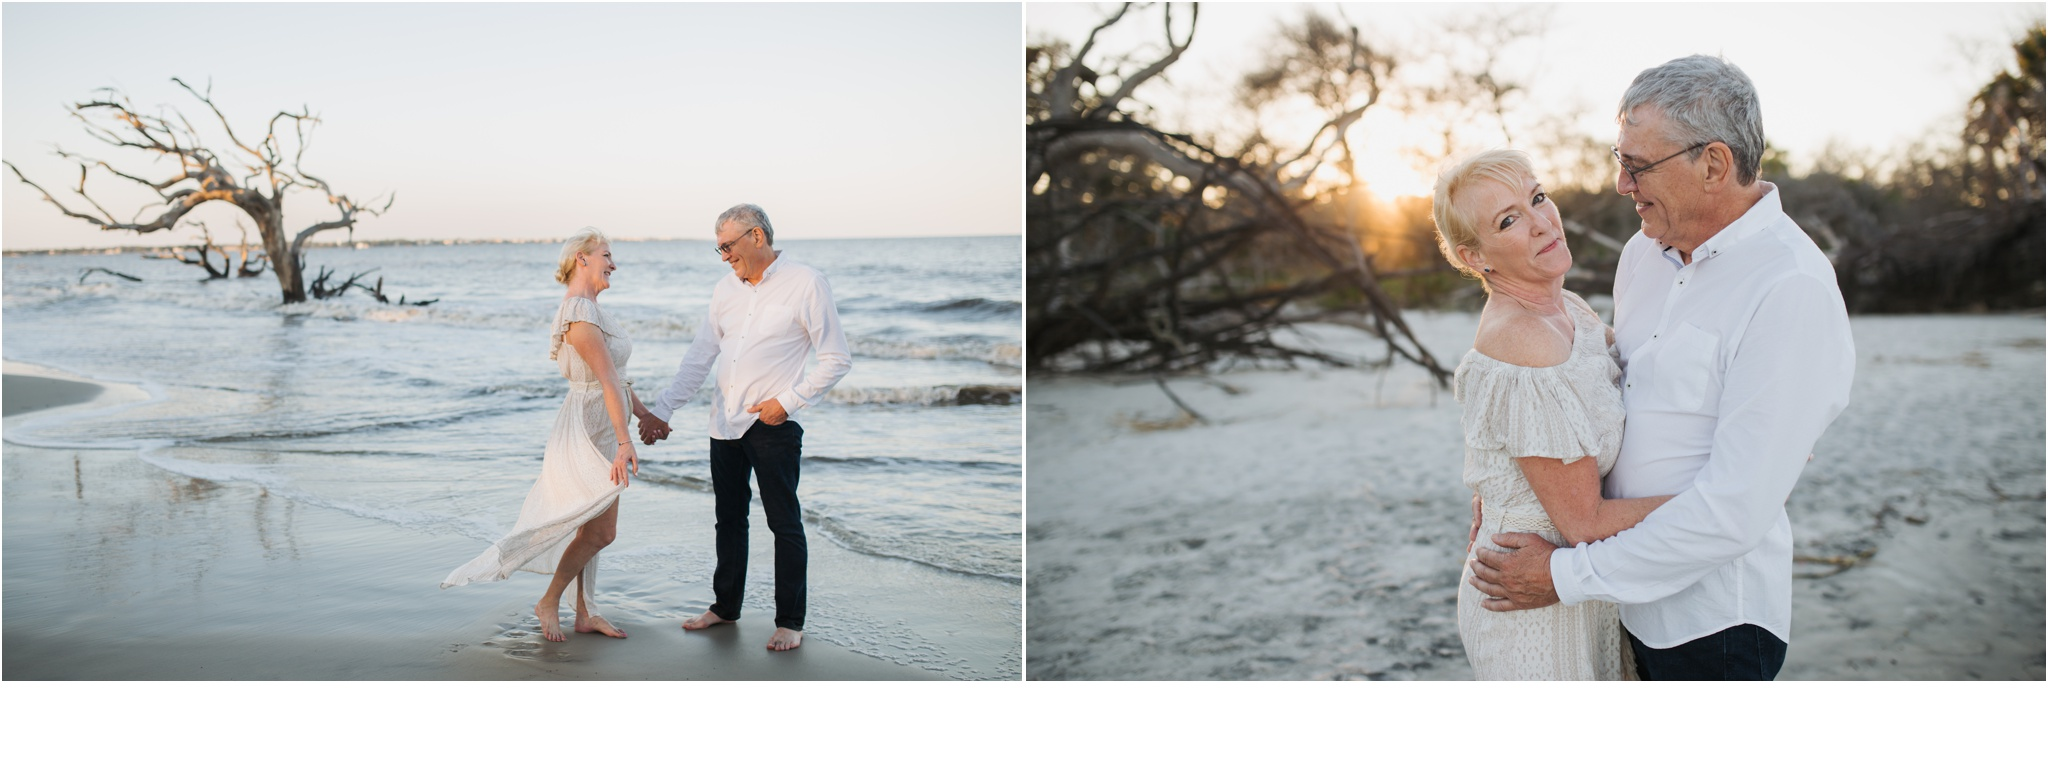 Rainey_Gregg_Photography_St._Simons_Island_Georgia_California_Wedding_Portrait_Photography_1608.jpg